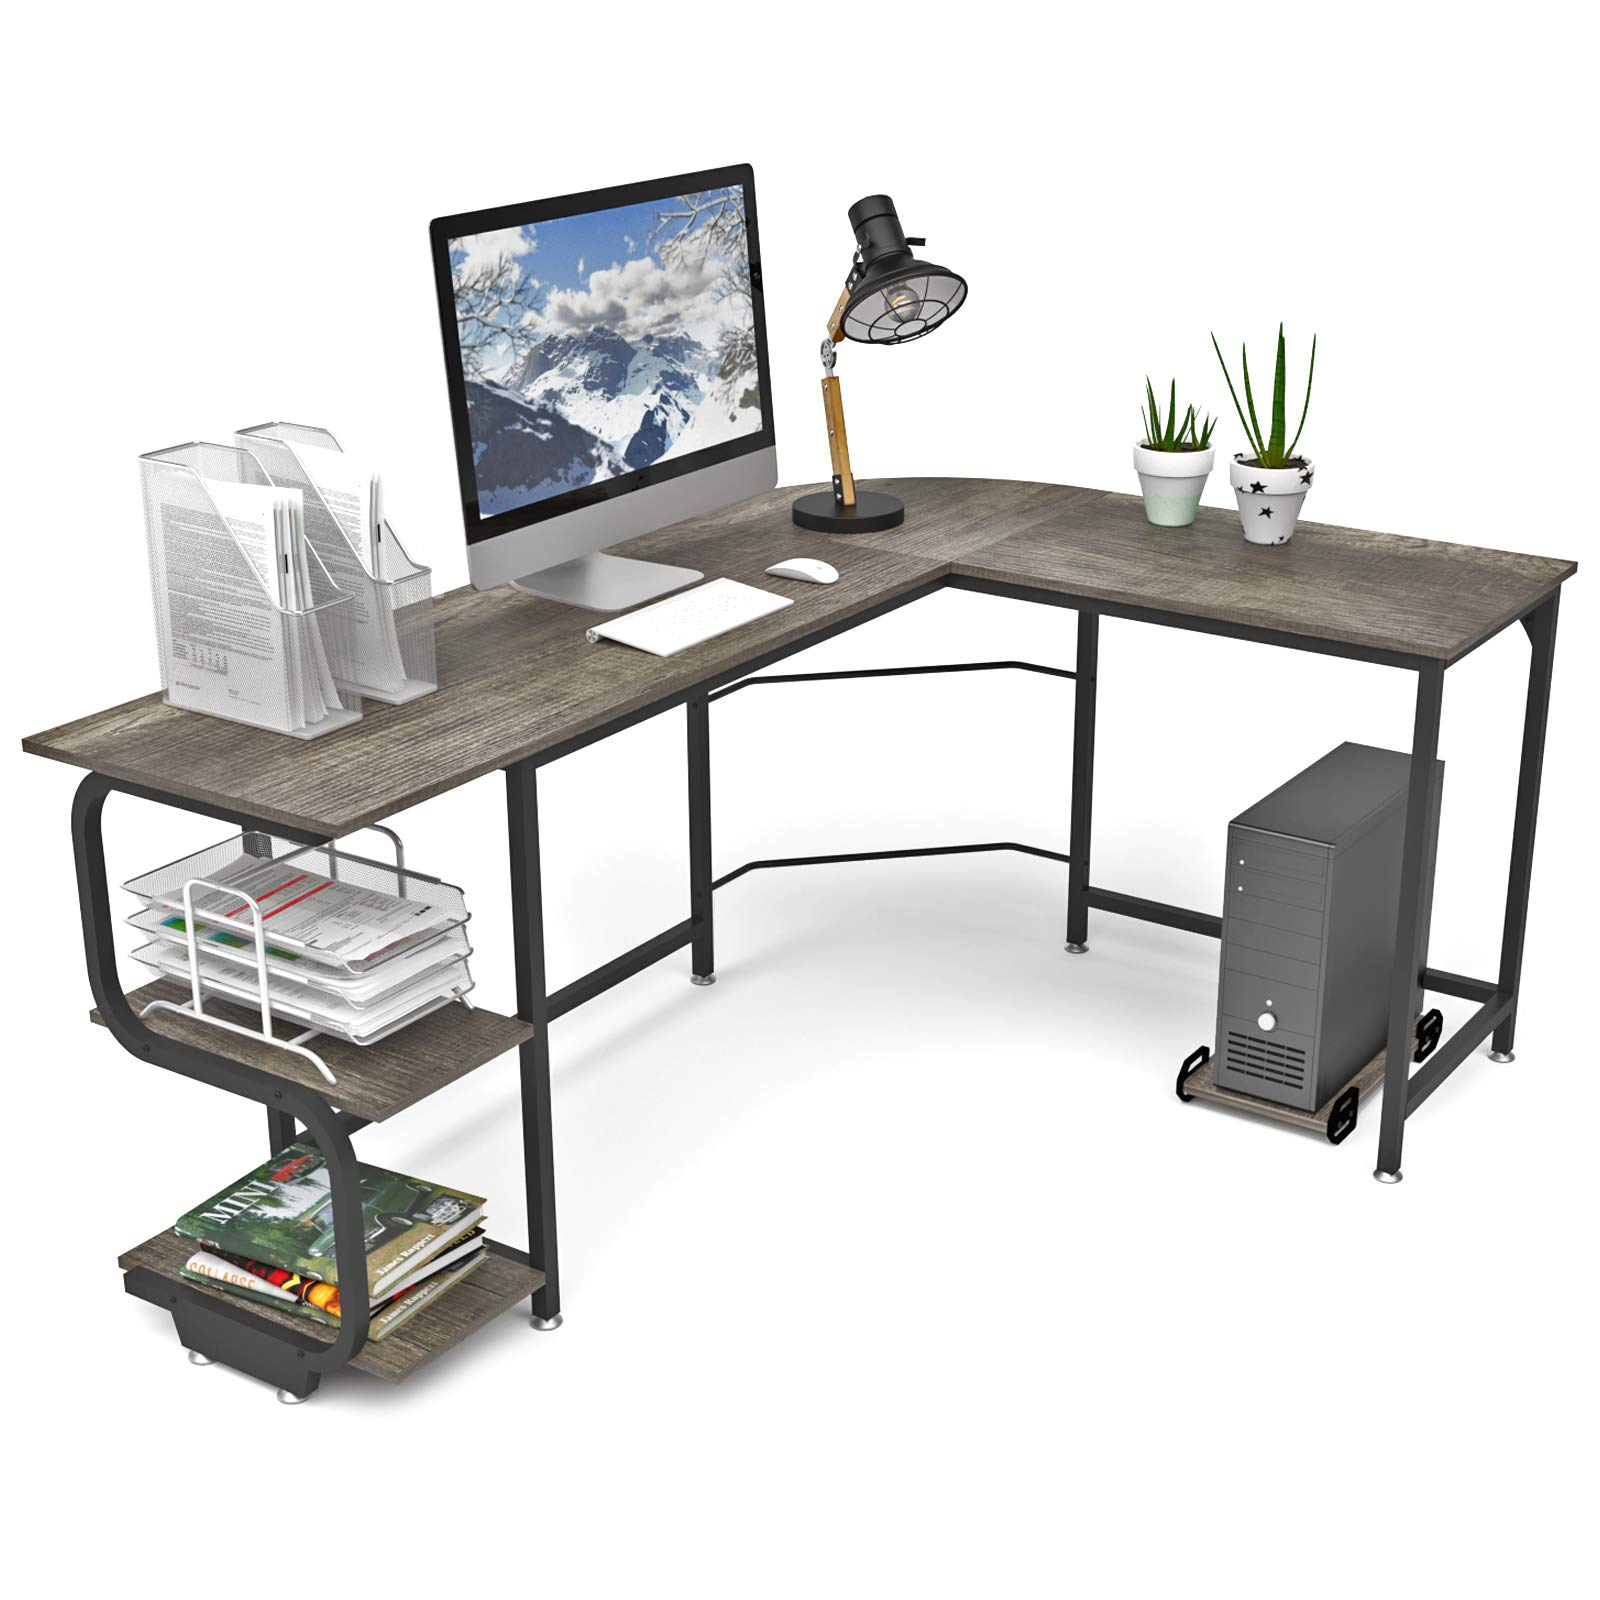 Teraves Reversible L Shaped Desk with Shelves Round Corner Computer Desk Gaming Table Workstation for Home Office by Teraves